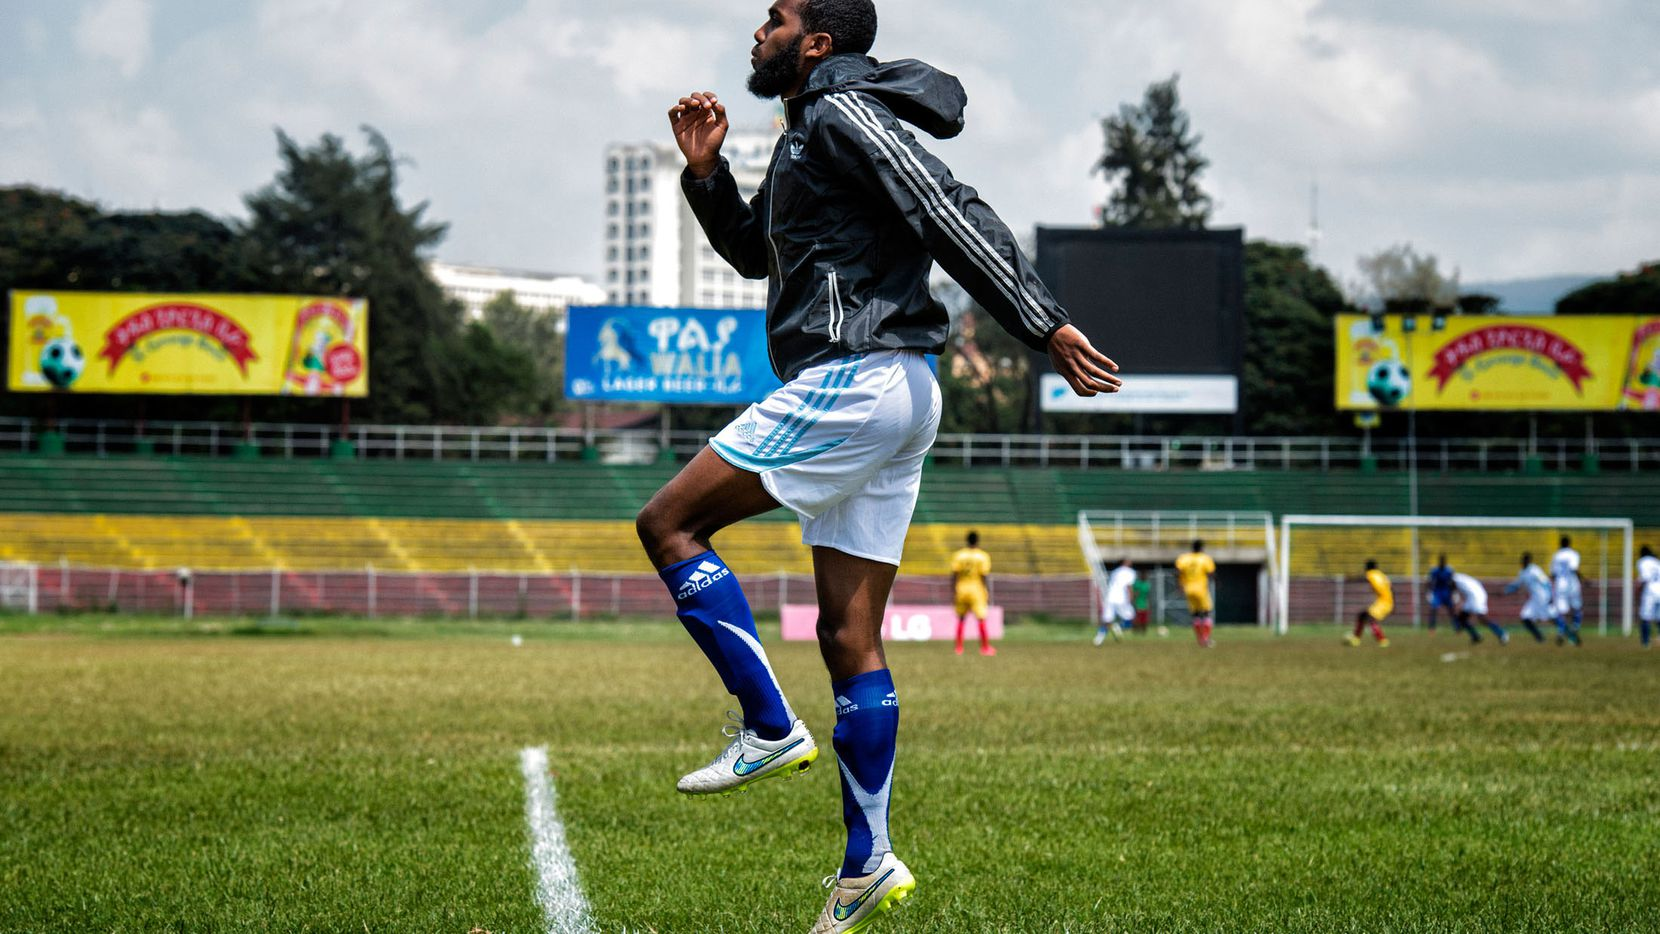 Somalia substitute Mohamud Ali warms up during a game against Ethiopia